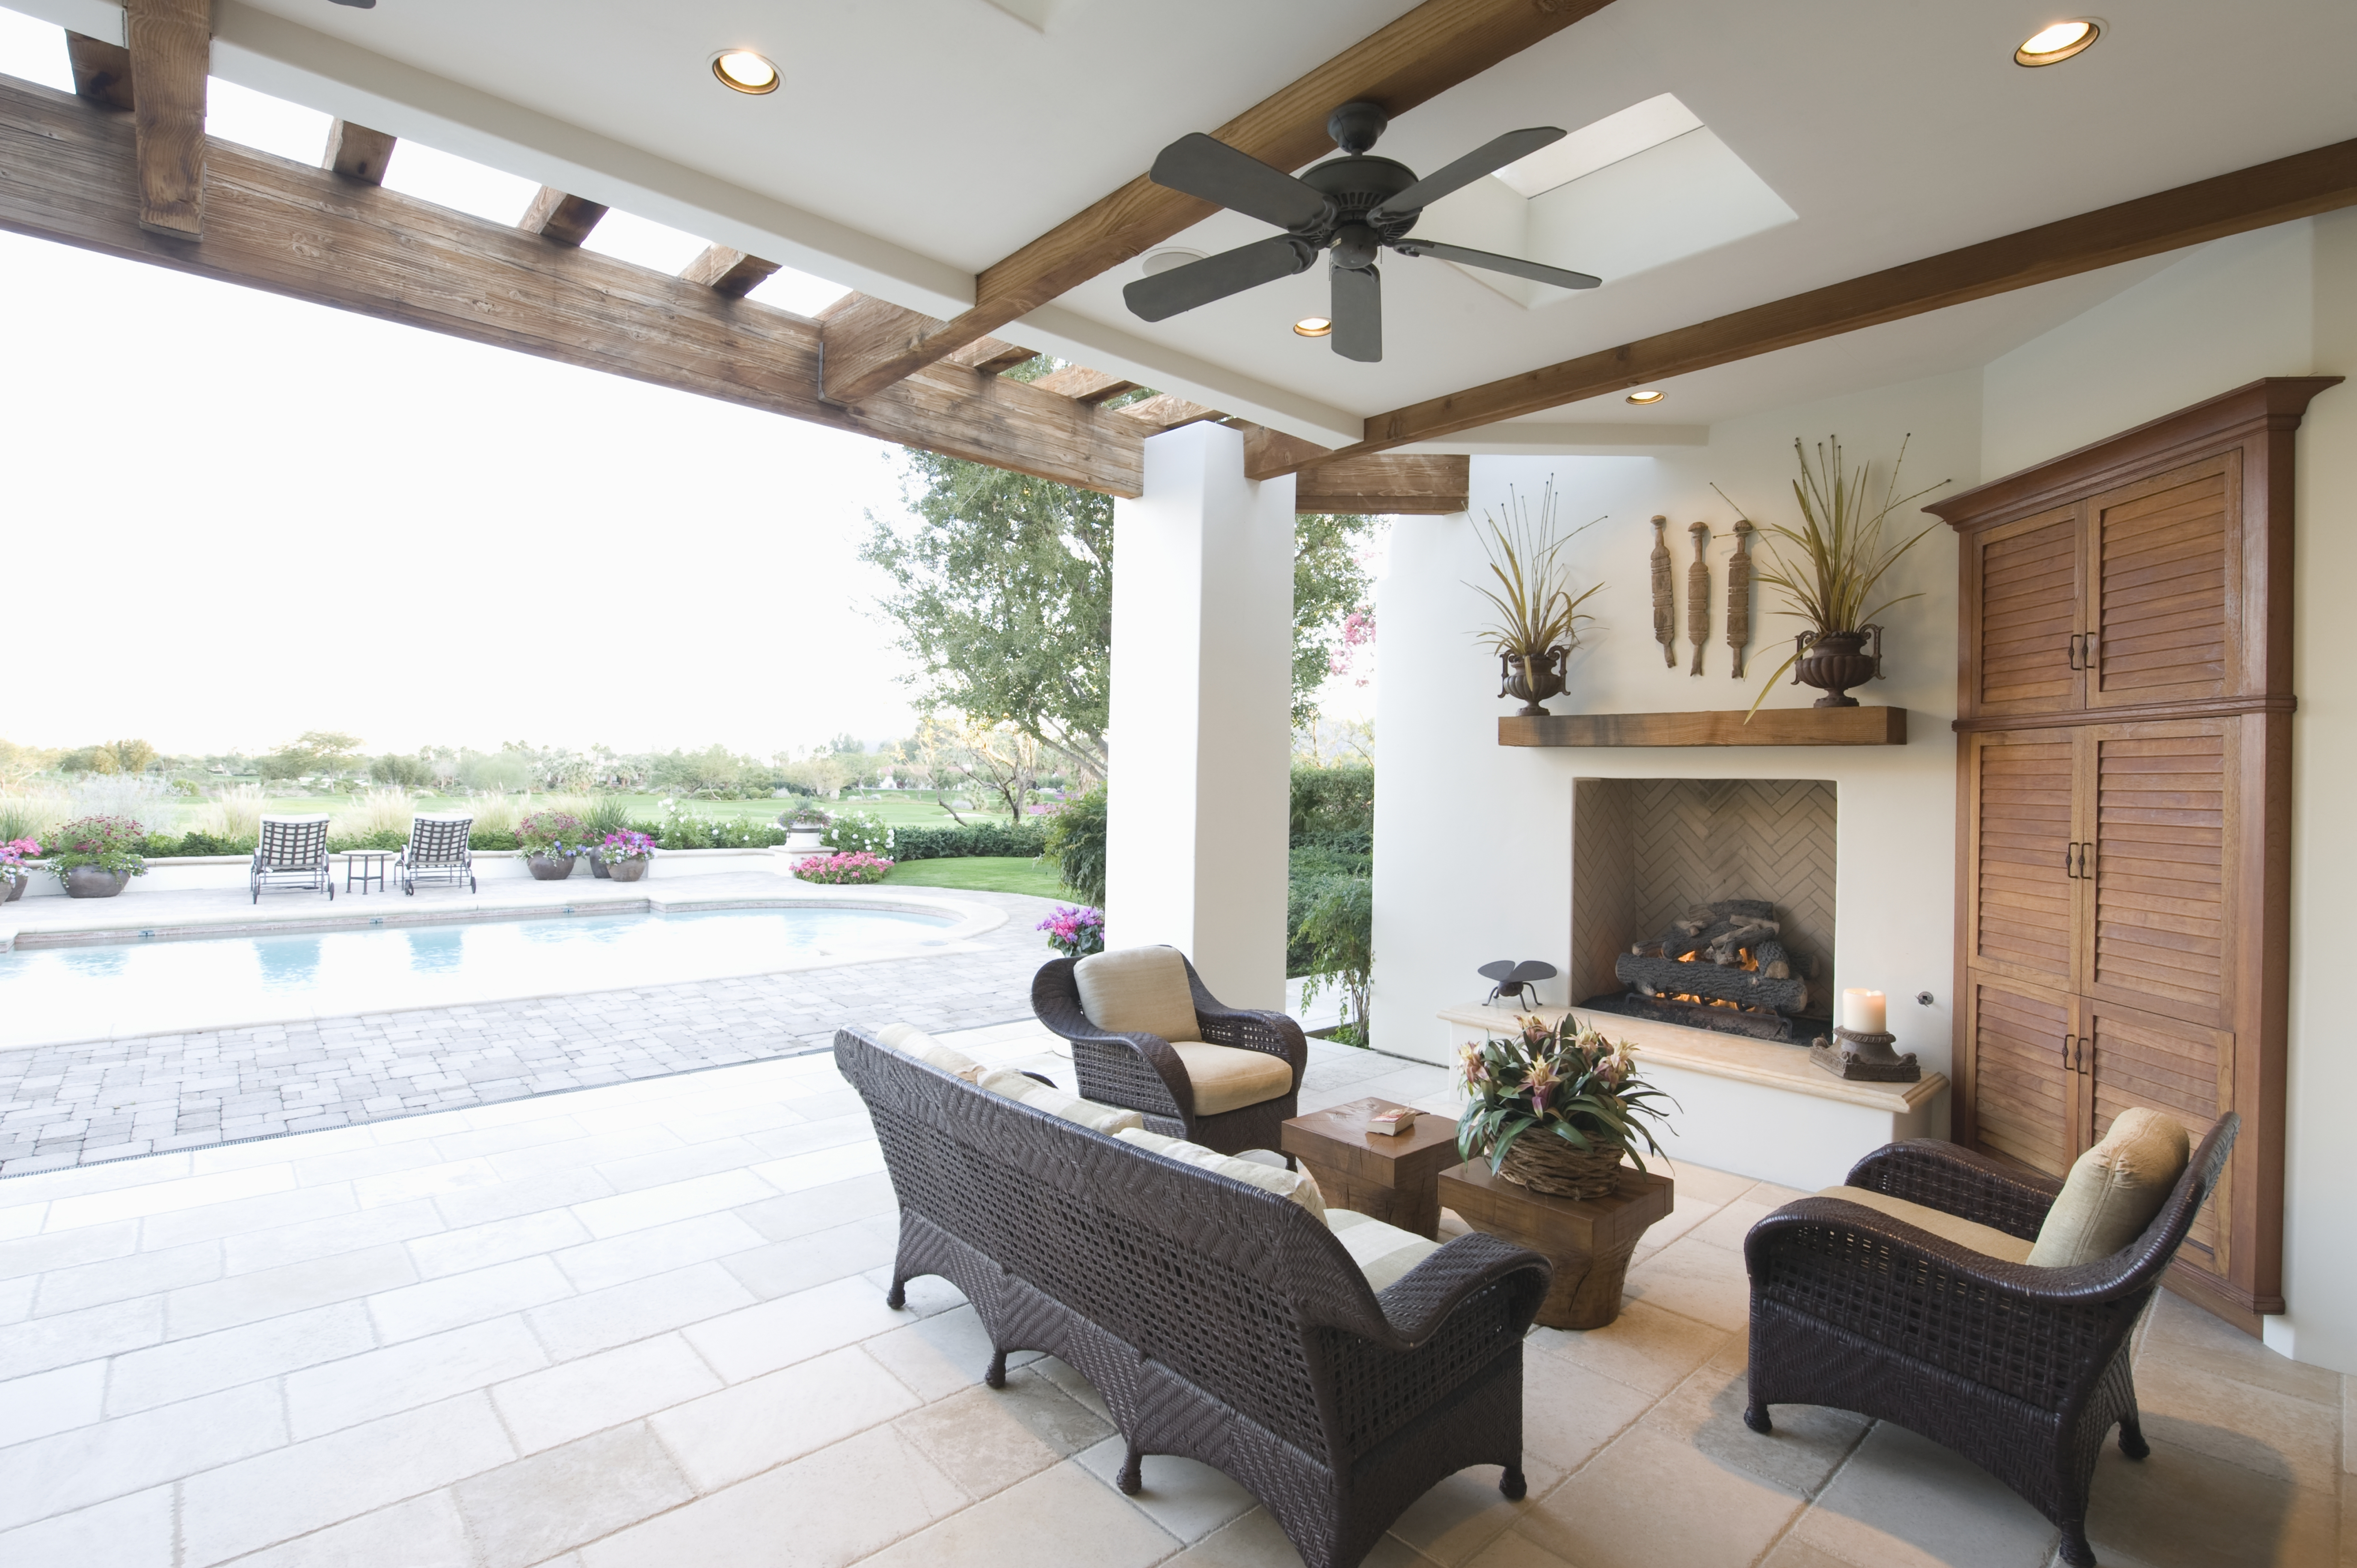 Famous Patio Fan Unique Ceiling Fans Outdoor Patio Home Design Ideas And Intended For Outdoor Ceiling Fans For Patios (View 6 of 20)